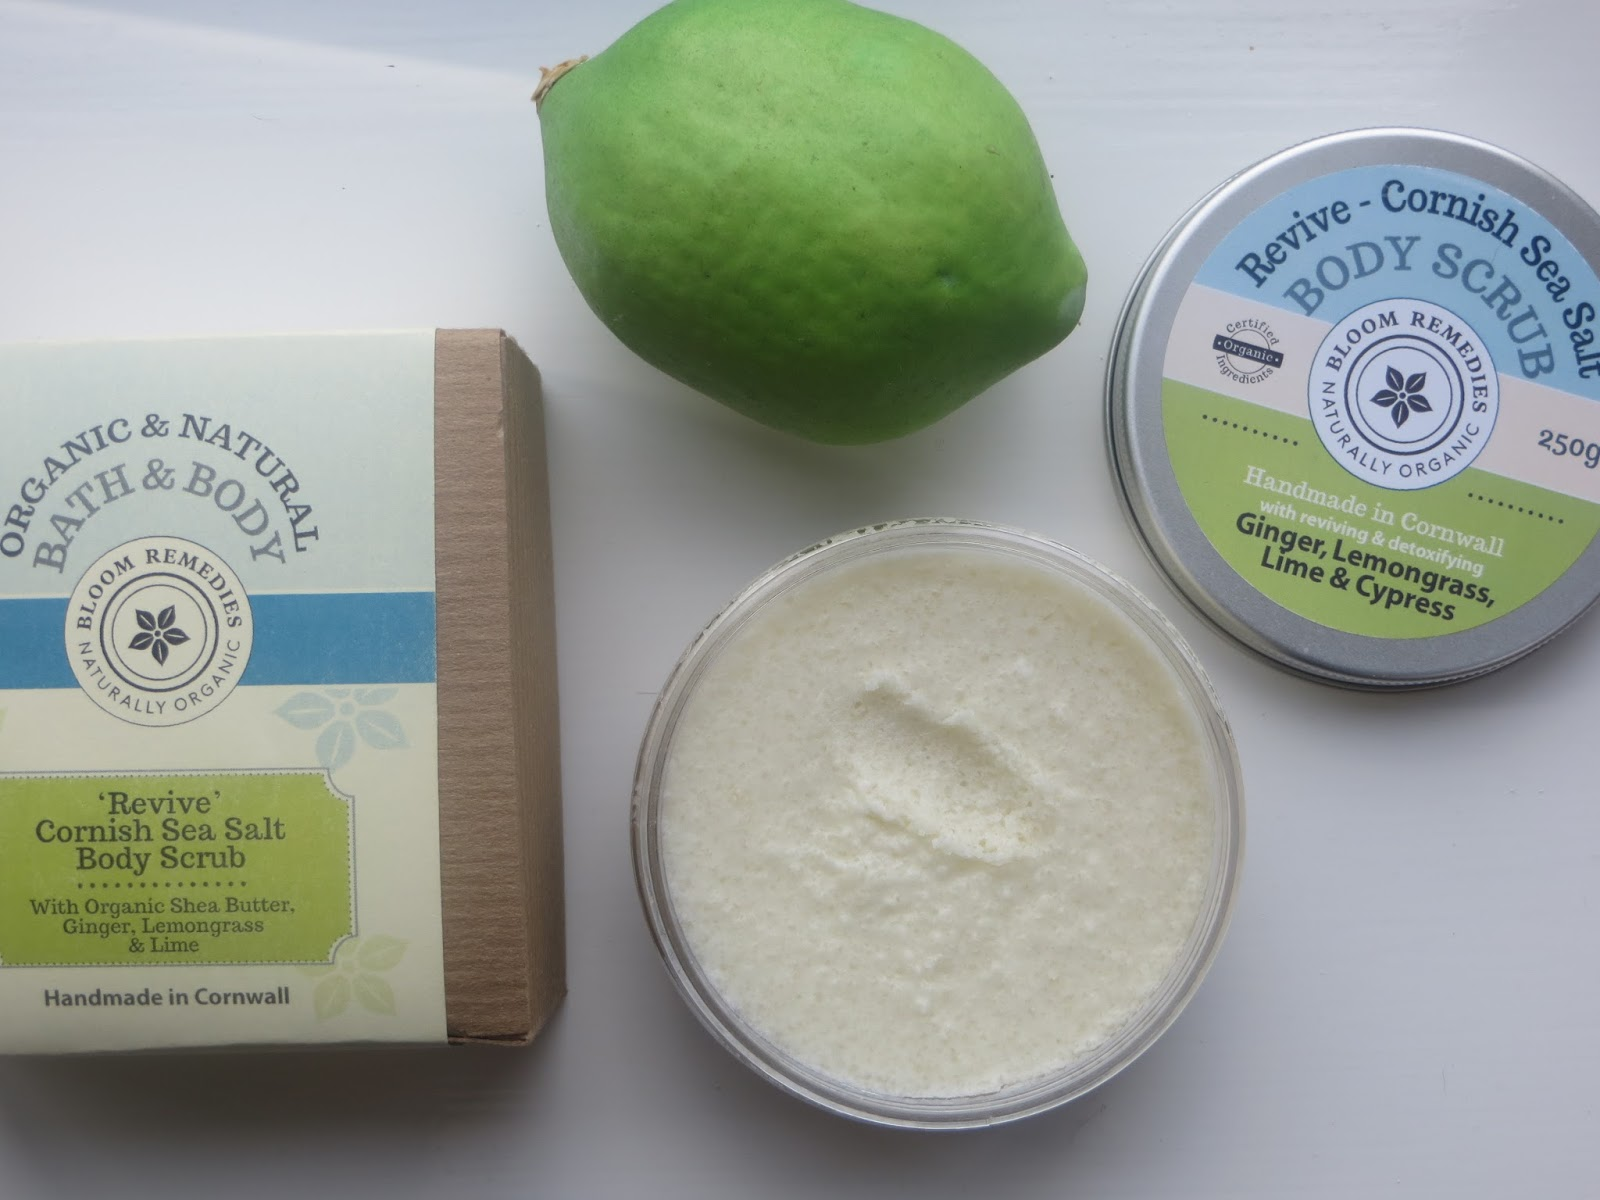 Bloom Remedies Revive Cornish Sea Salt Scrub